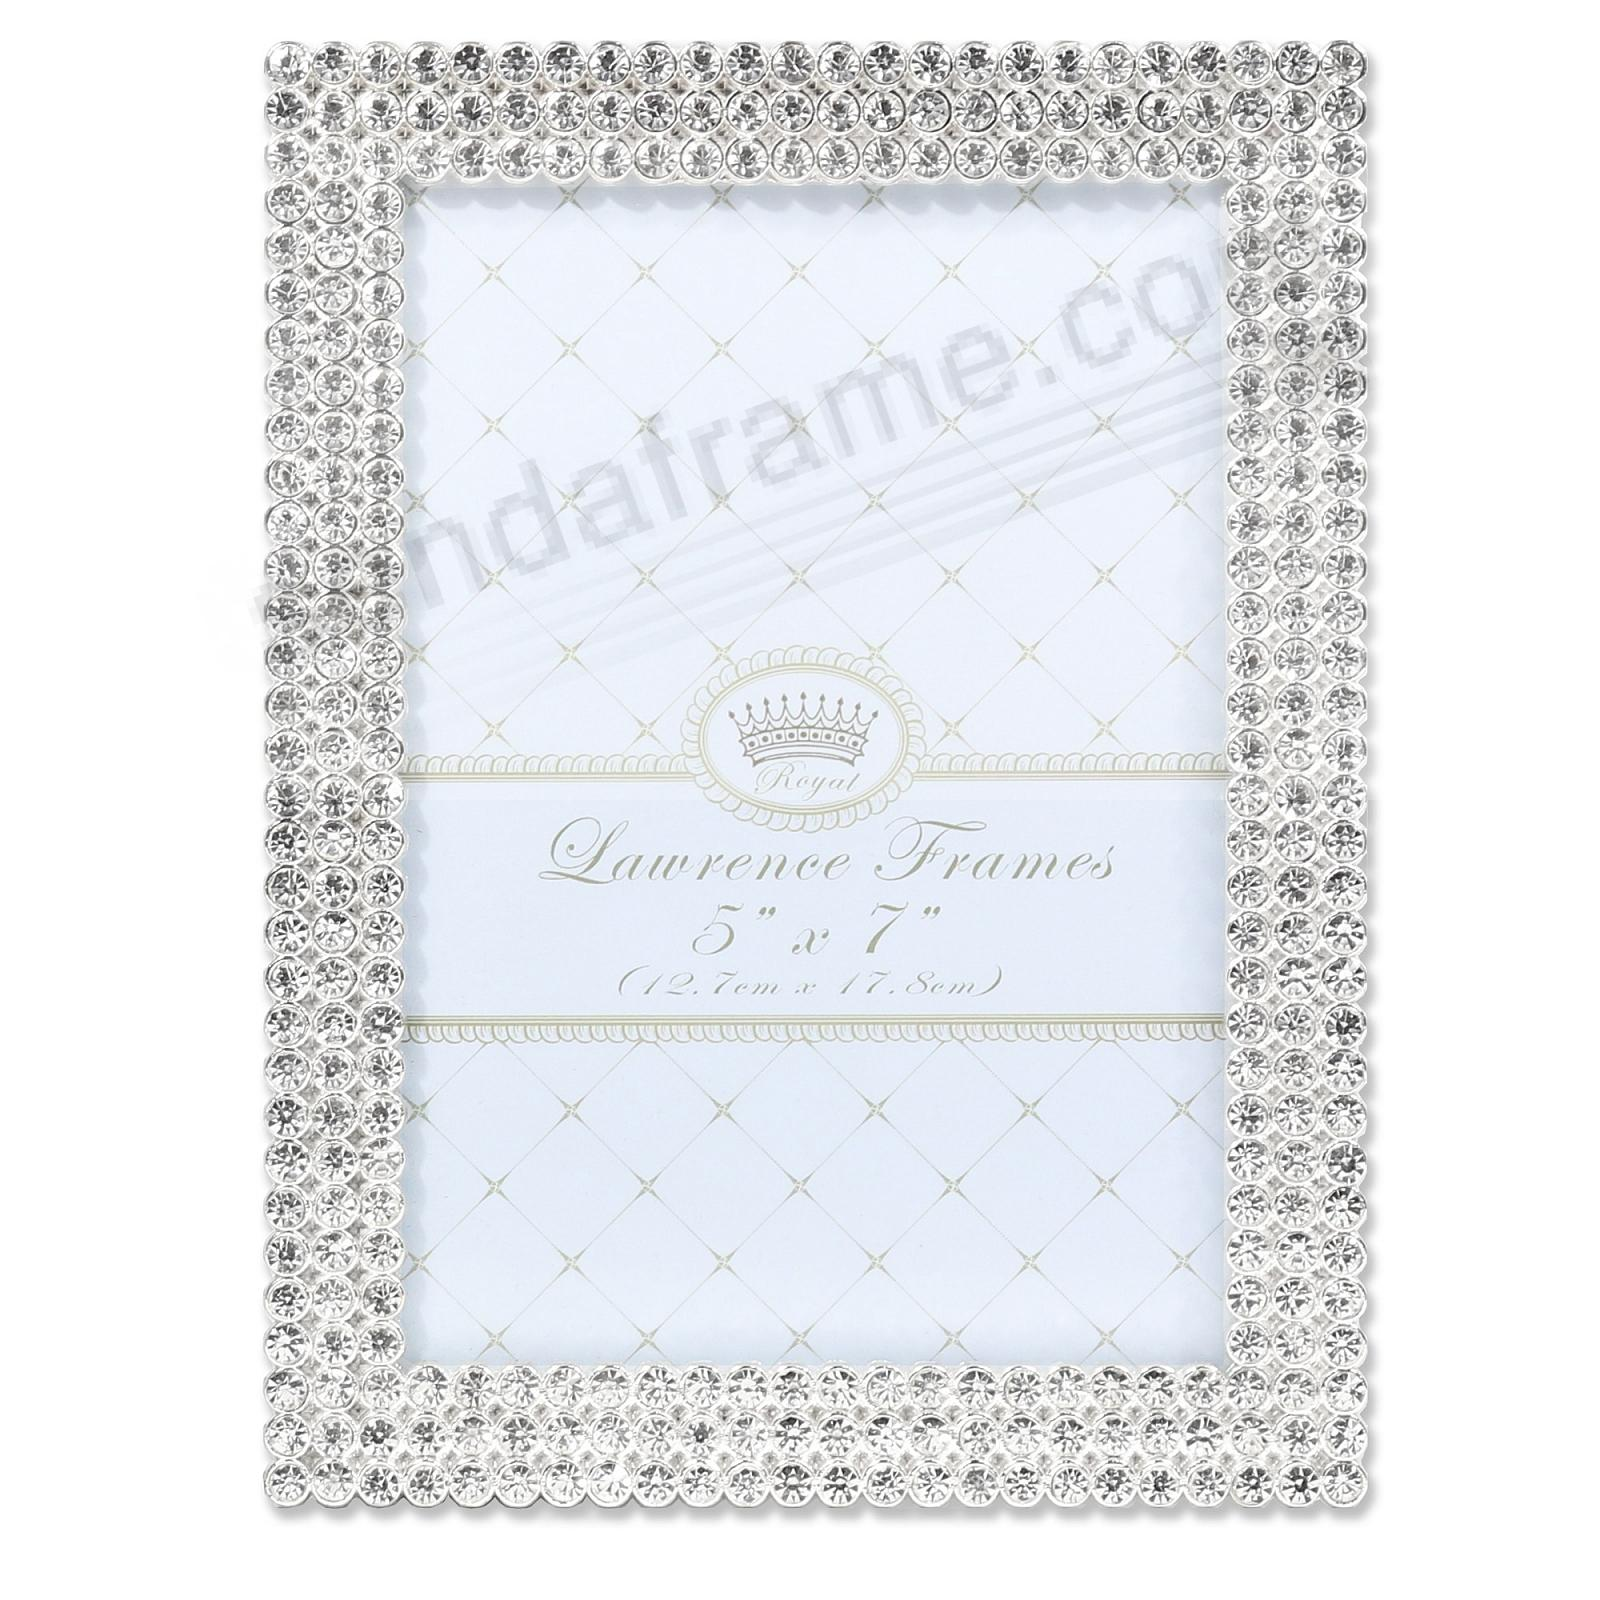 JULIET WHITE CRYSTAL JEWELS + SILVER 4x6 frame